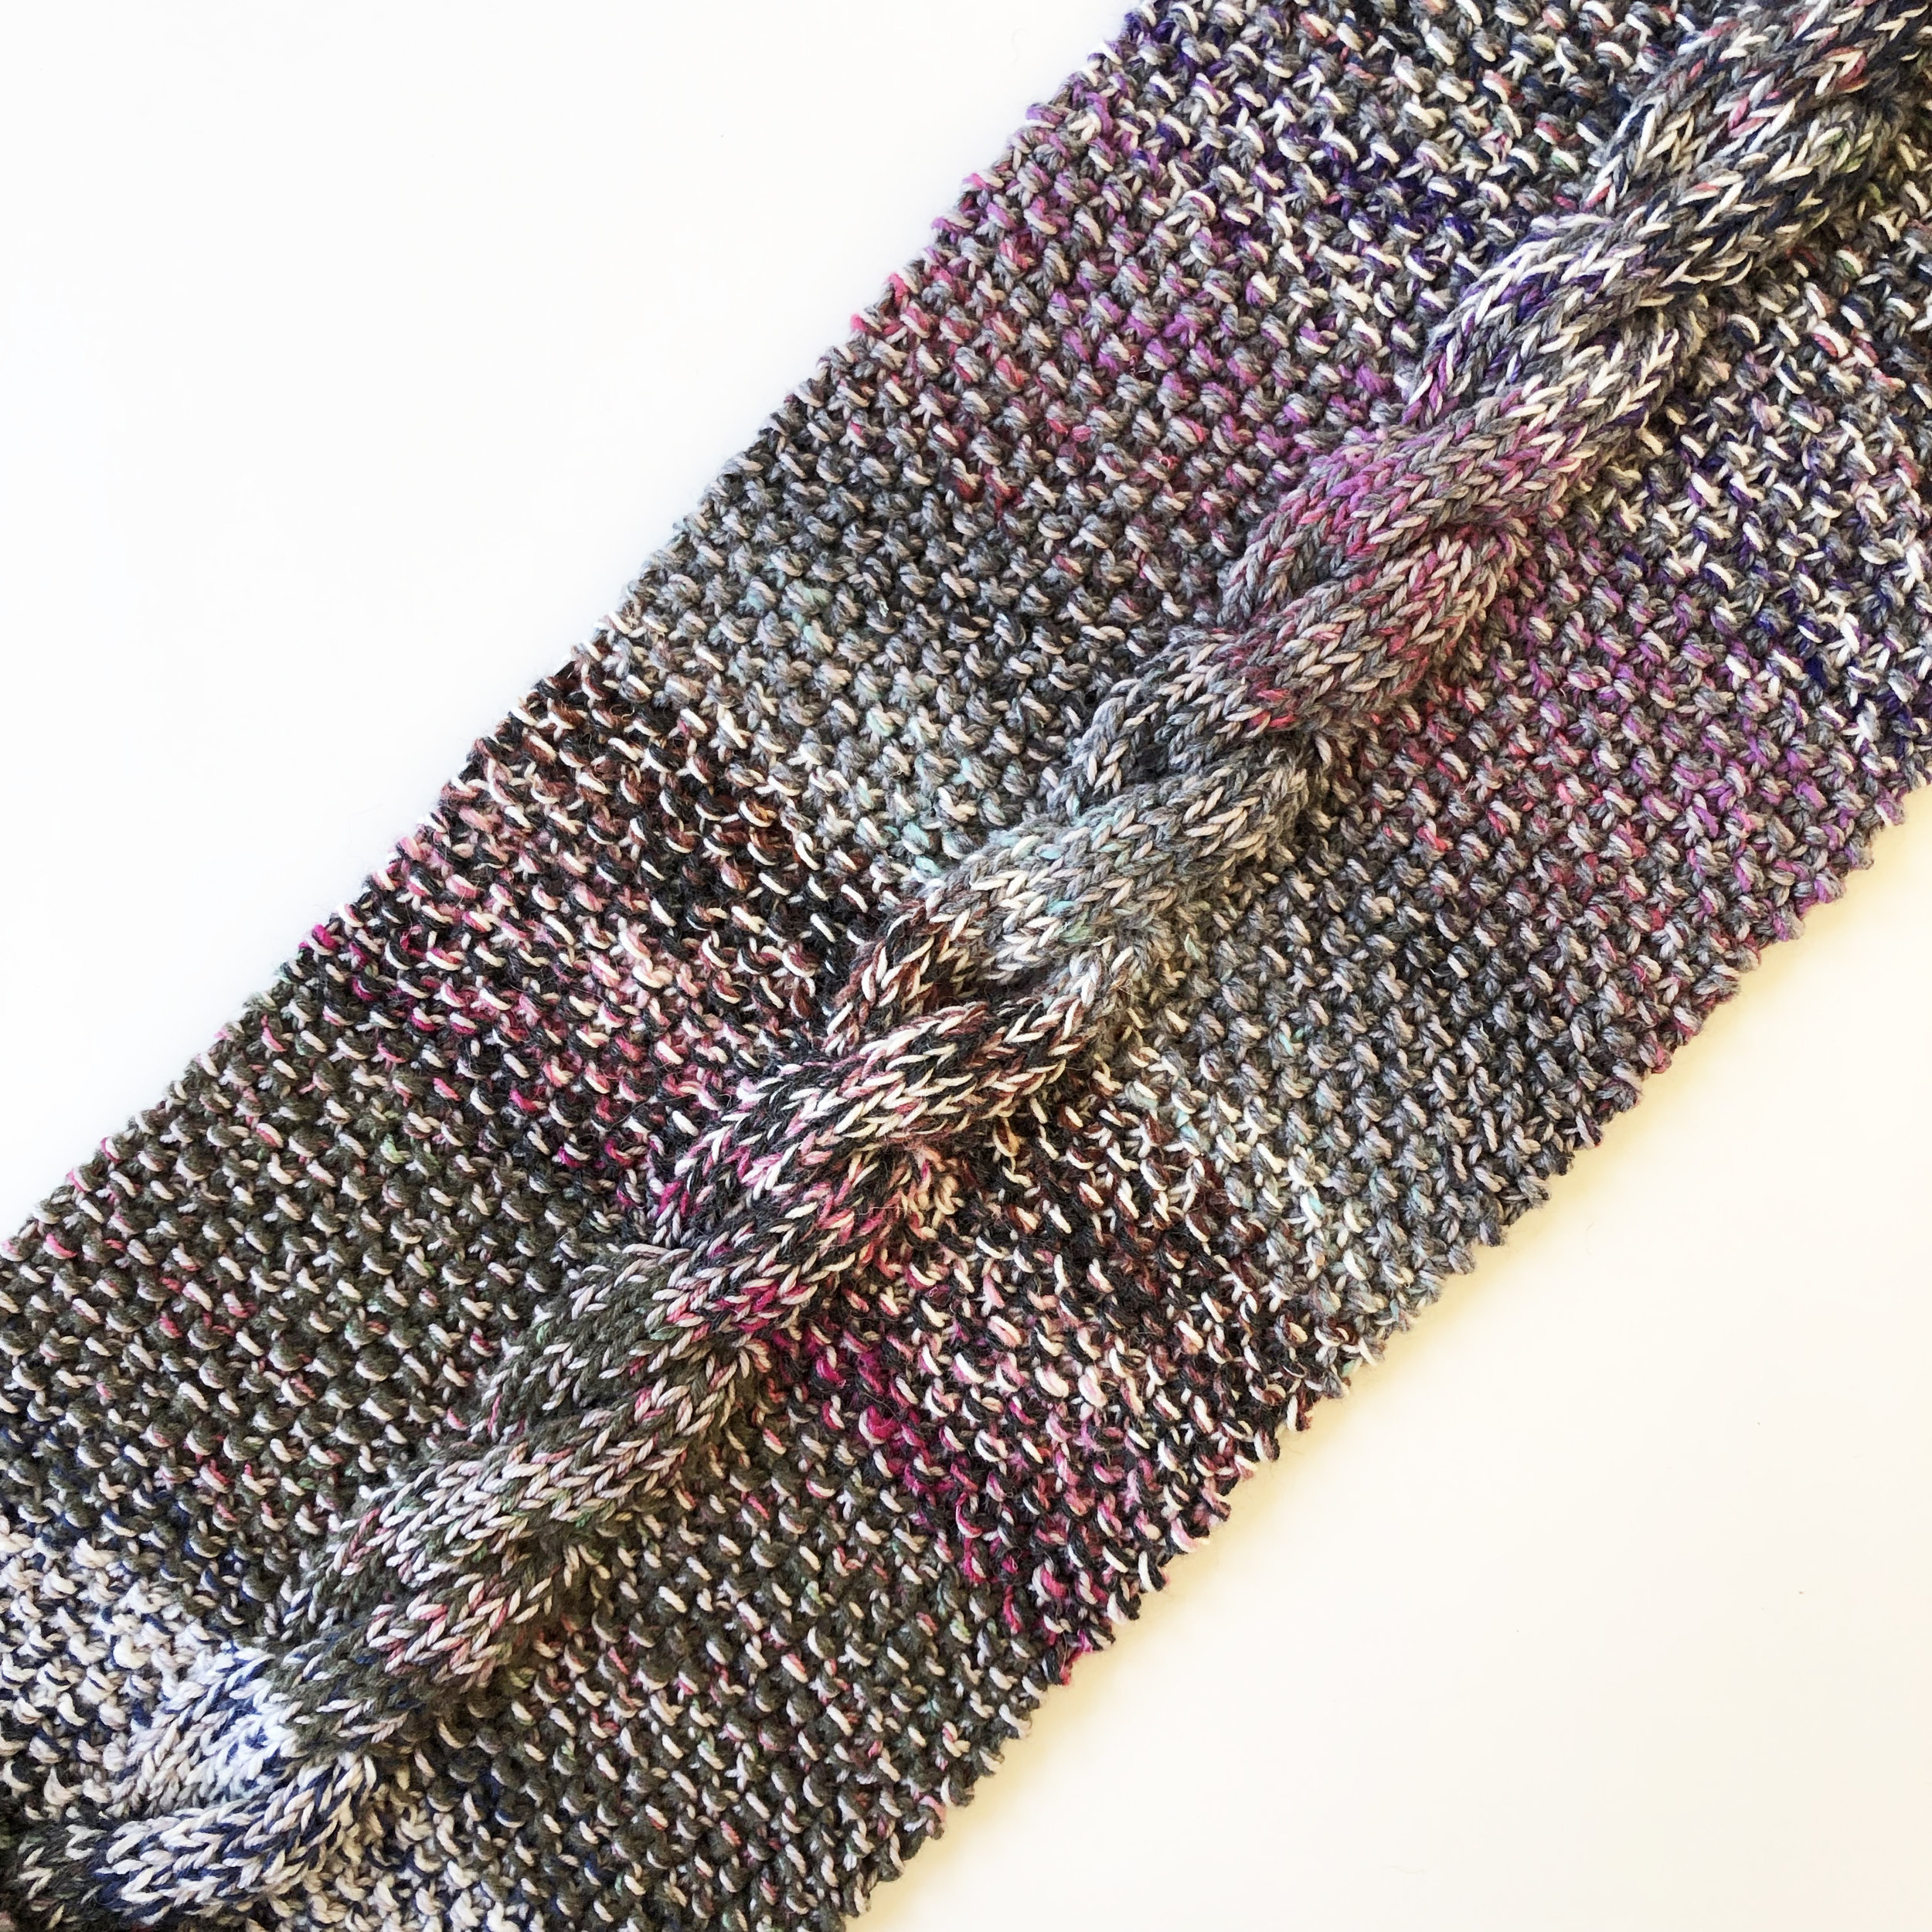 cable-scraps-by-park-williams-parknknit-scarf-knitting-pattern-test-knit-elisemade